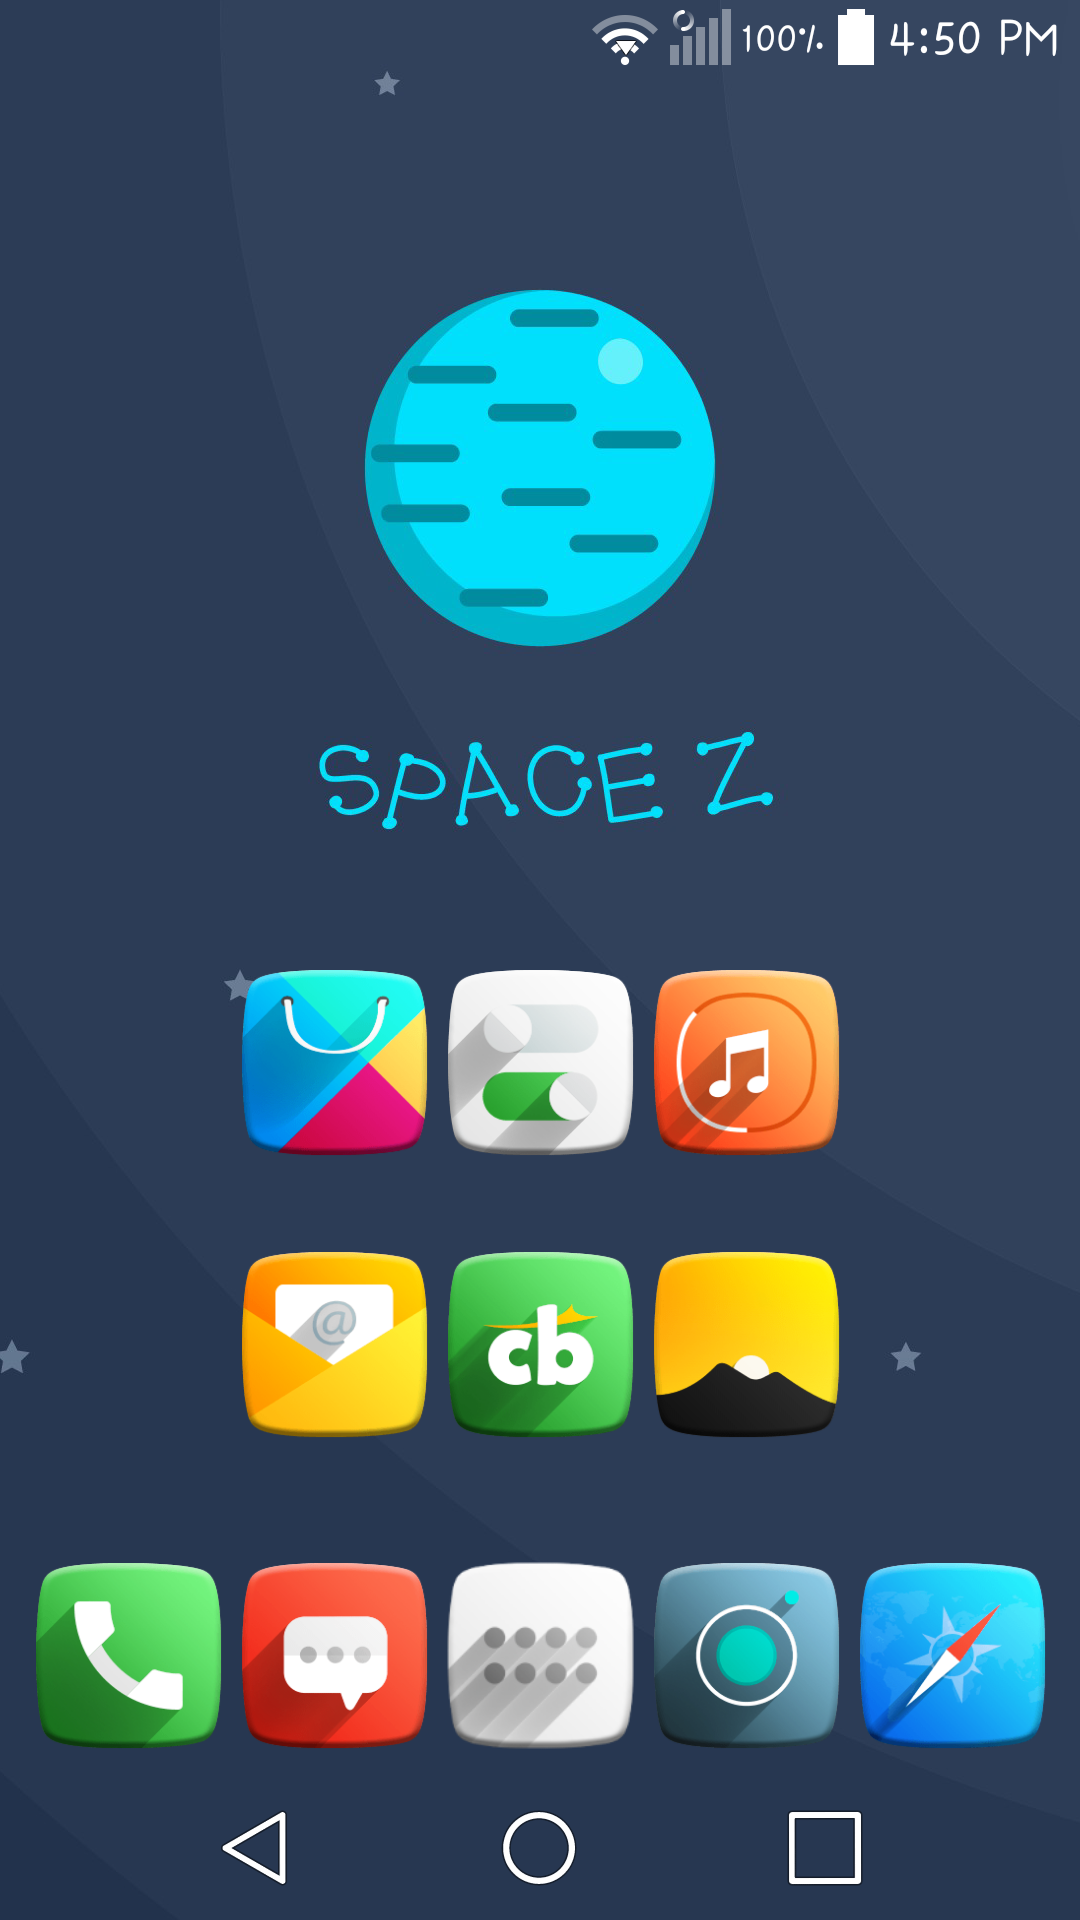 Lost in Space Setup made using Space Z icon pack https